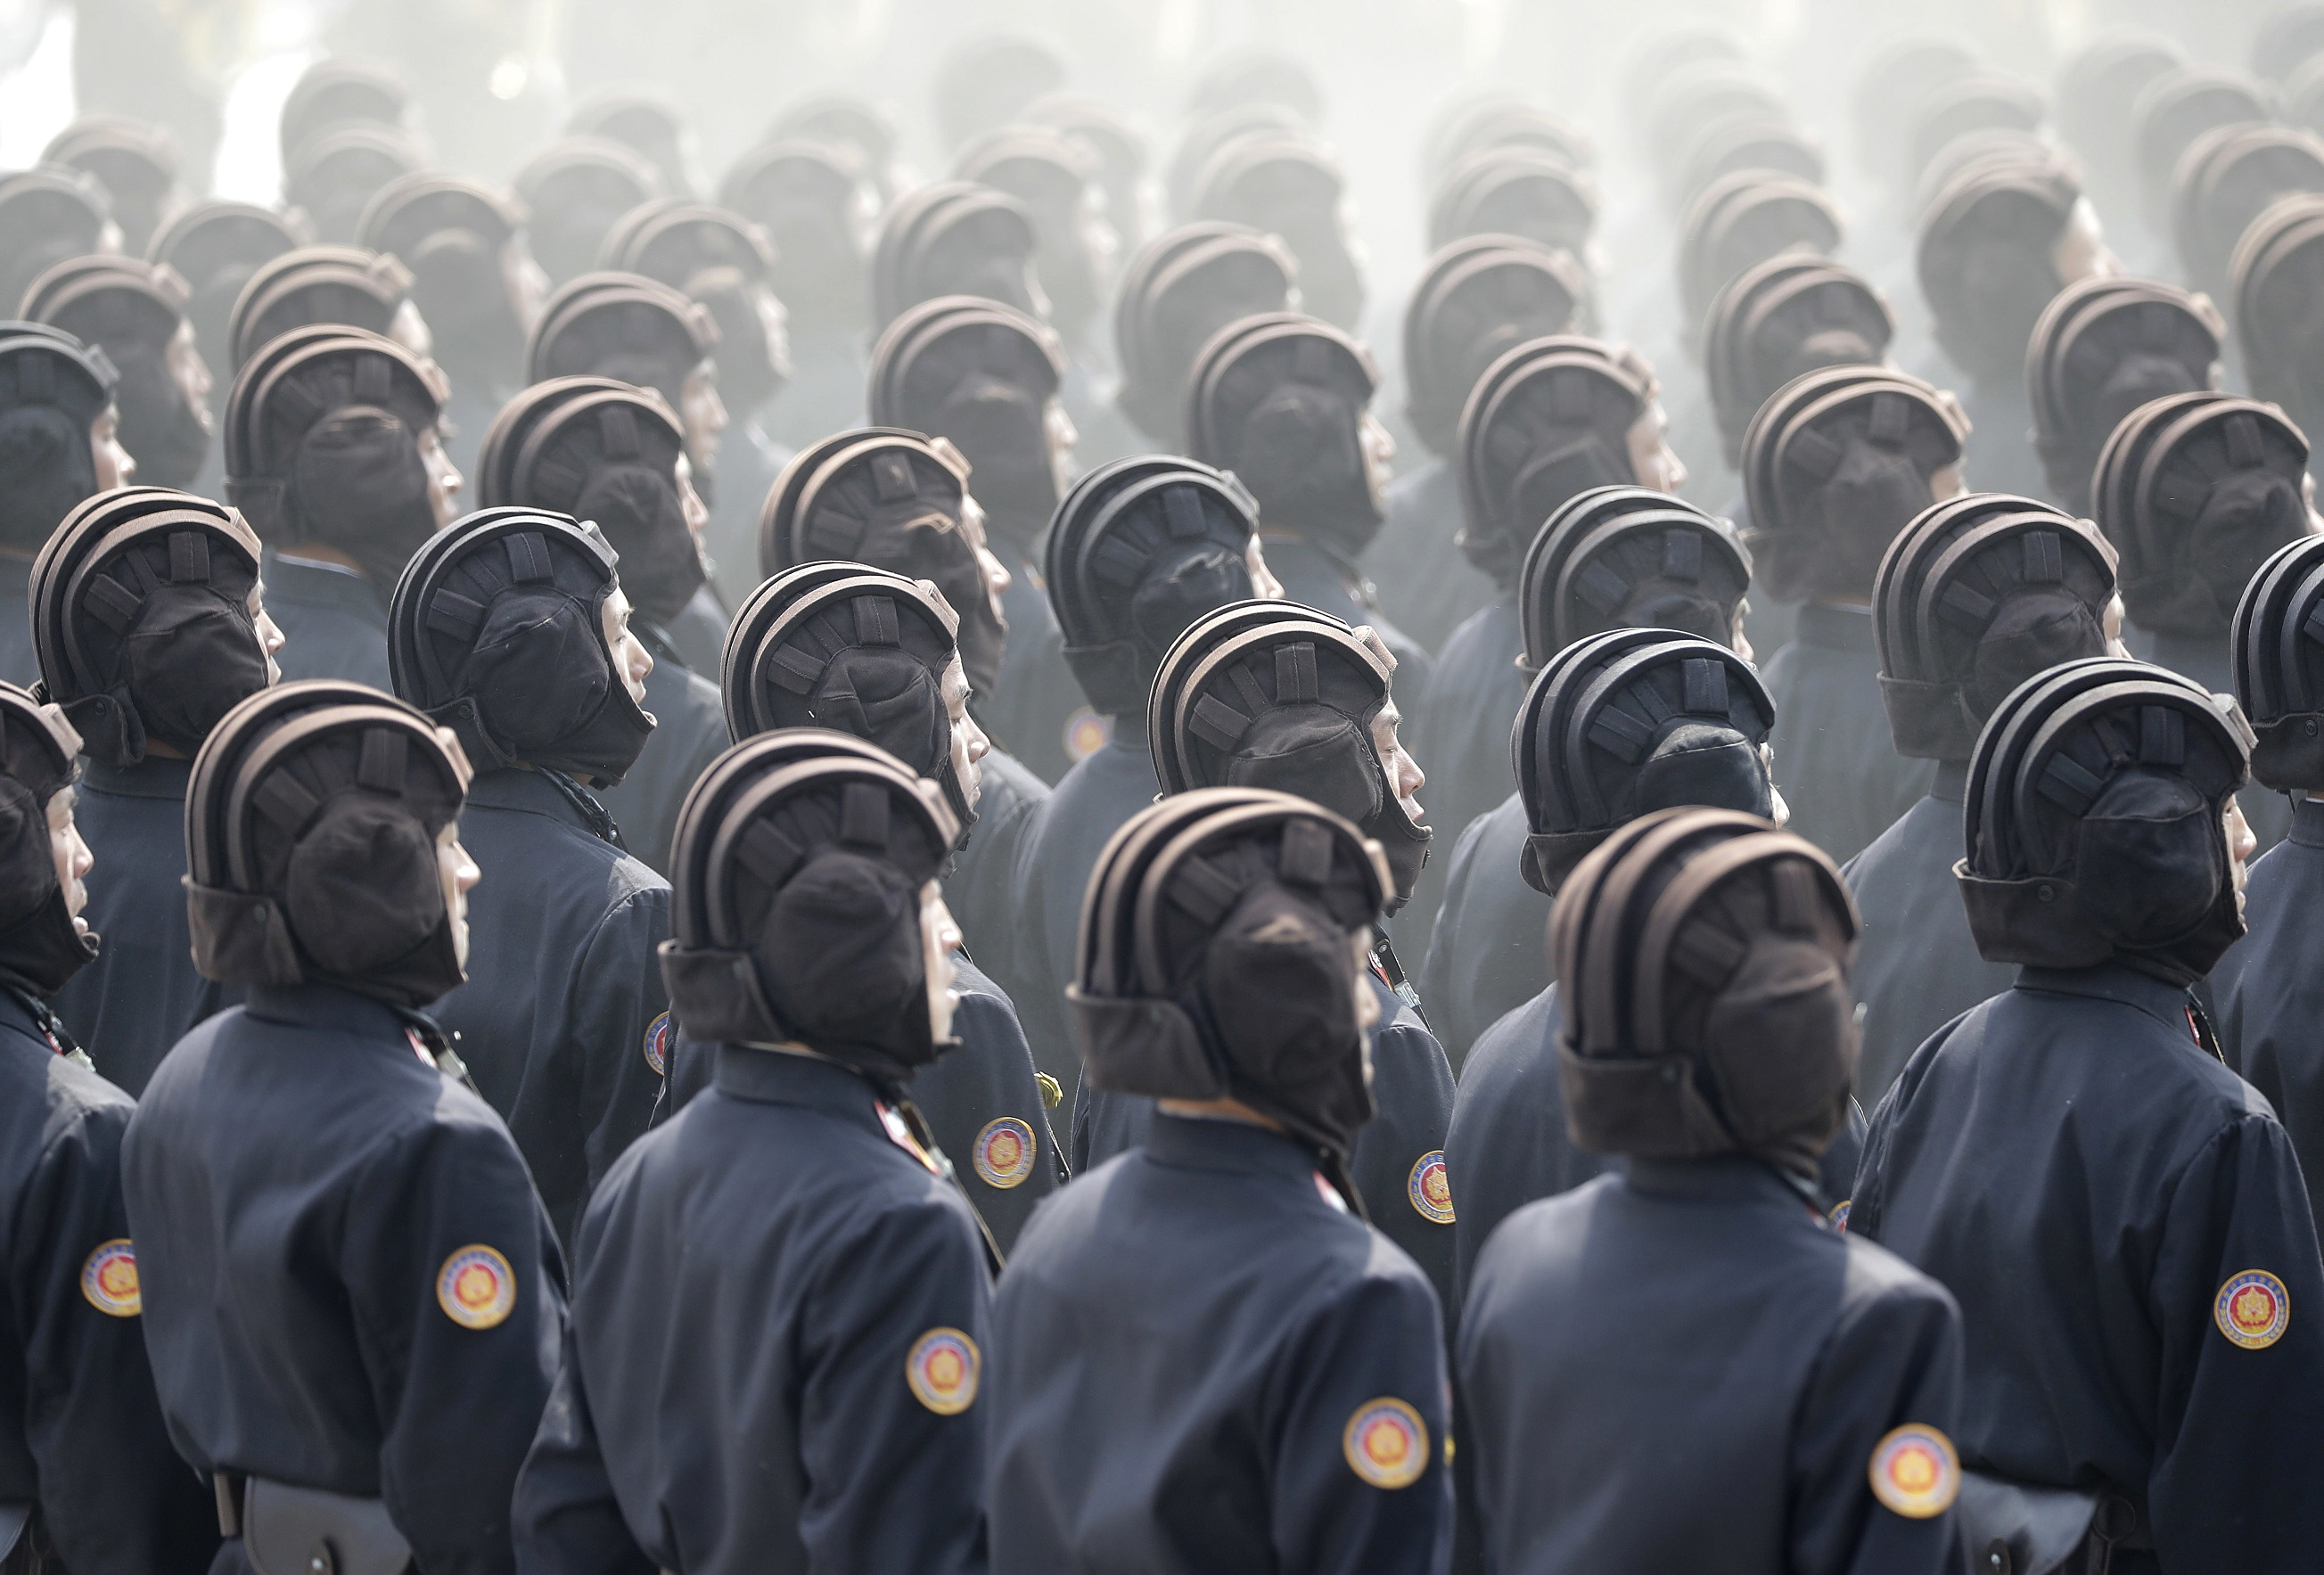 Soldiers march across Kim Il Sung Square during a military parade in Pyongyang, North Korea, to celebrate the 105th birth anniversary of Kim Il Sung, ...